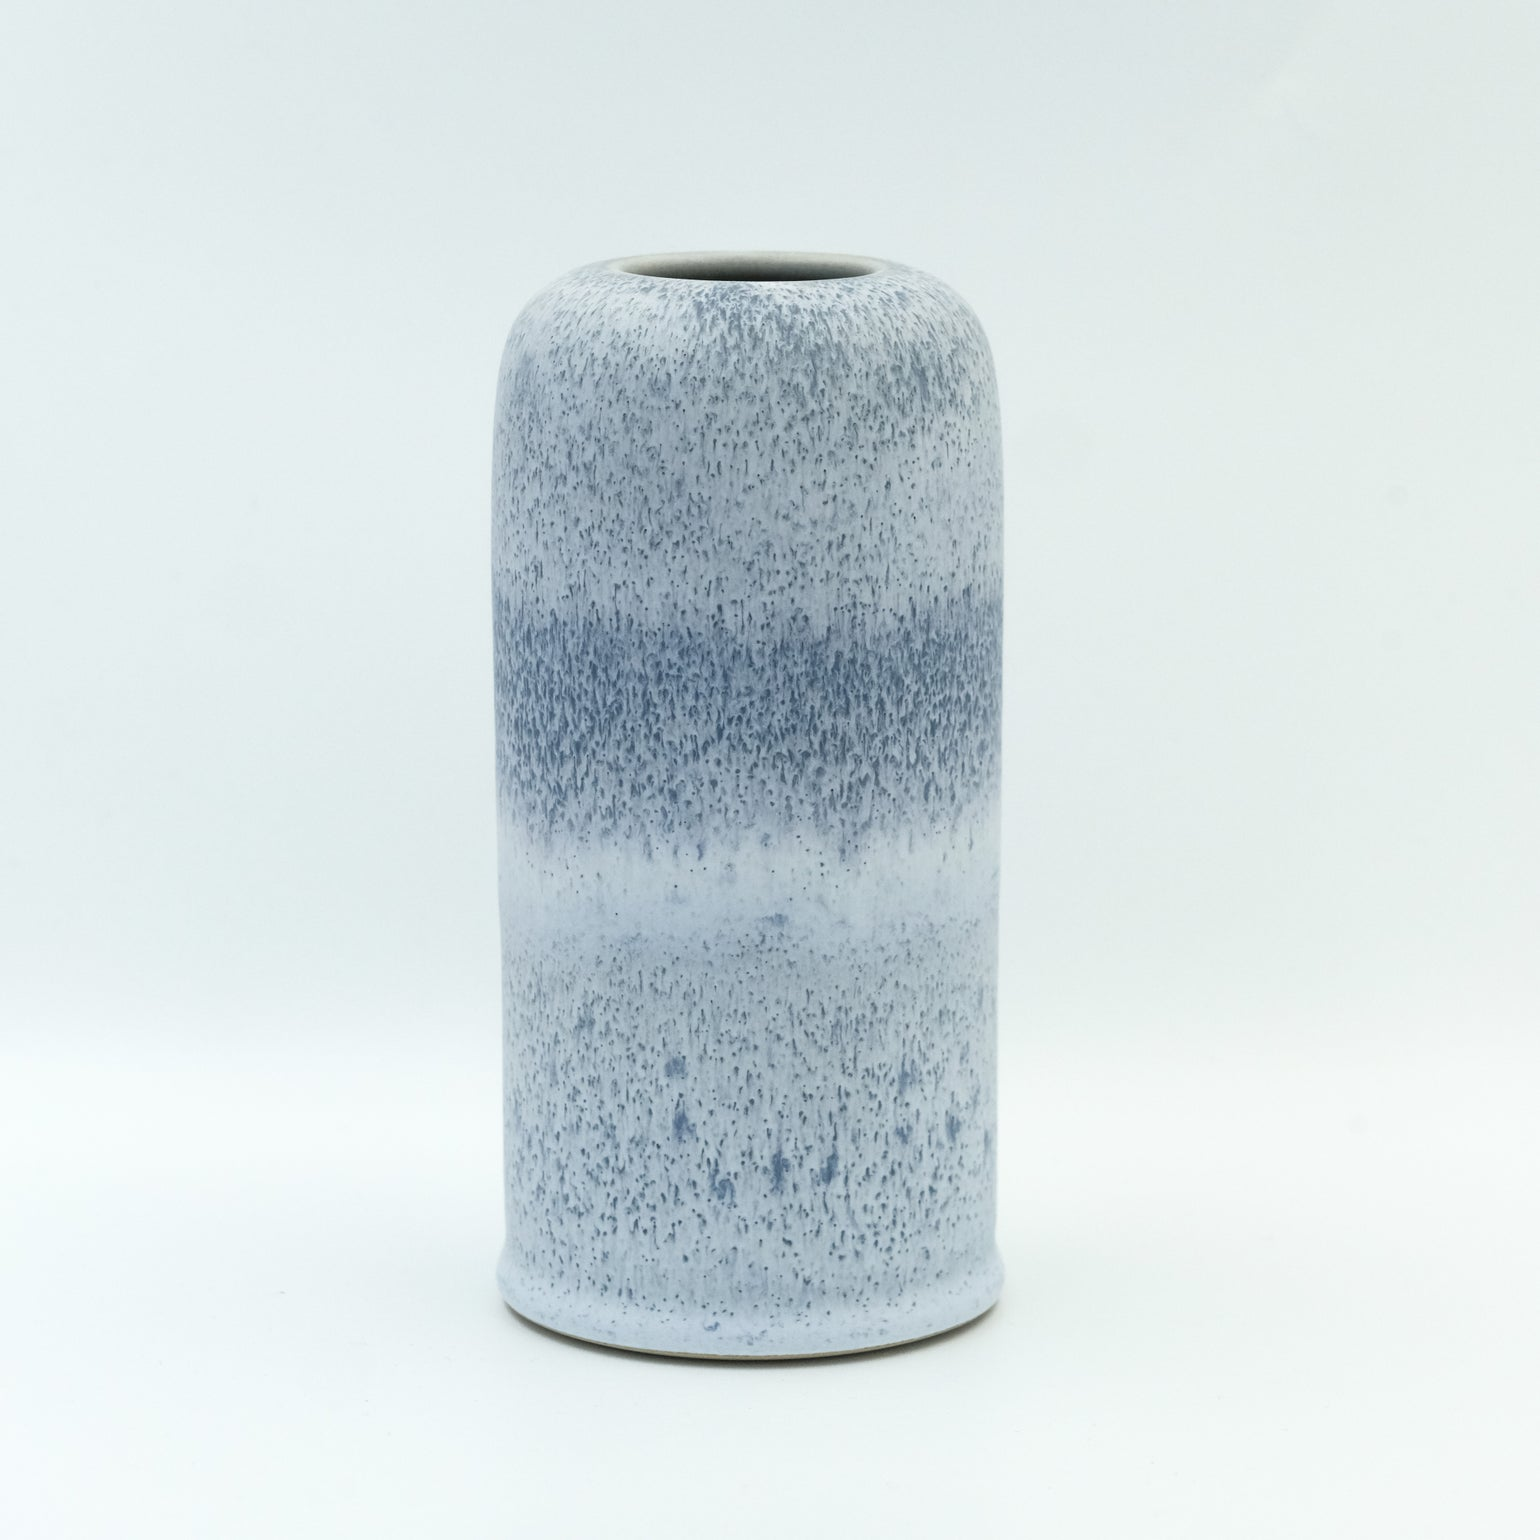 Image of MEDIUM UNIKA VASE IN FROSTED BLUE GLAZE